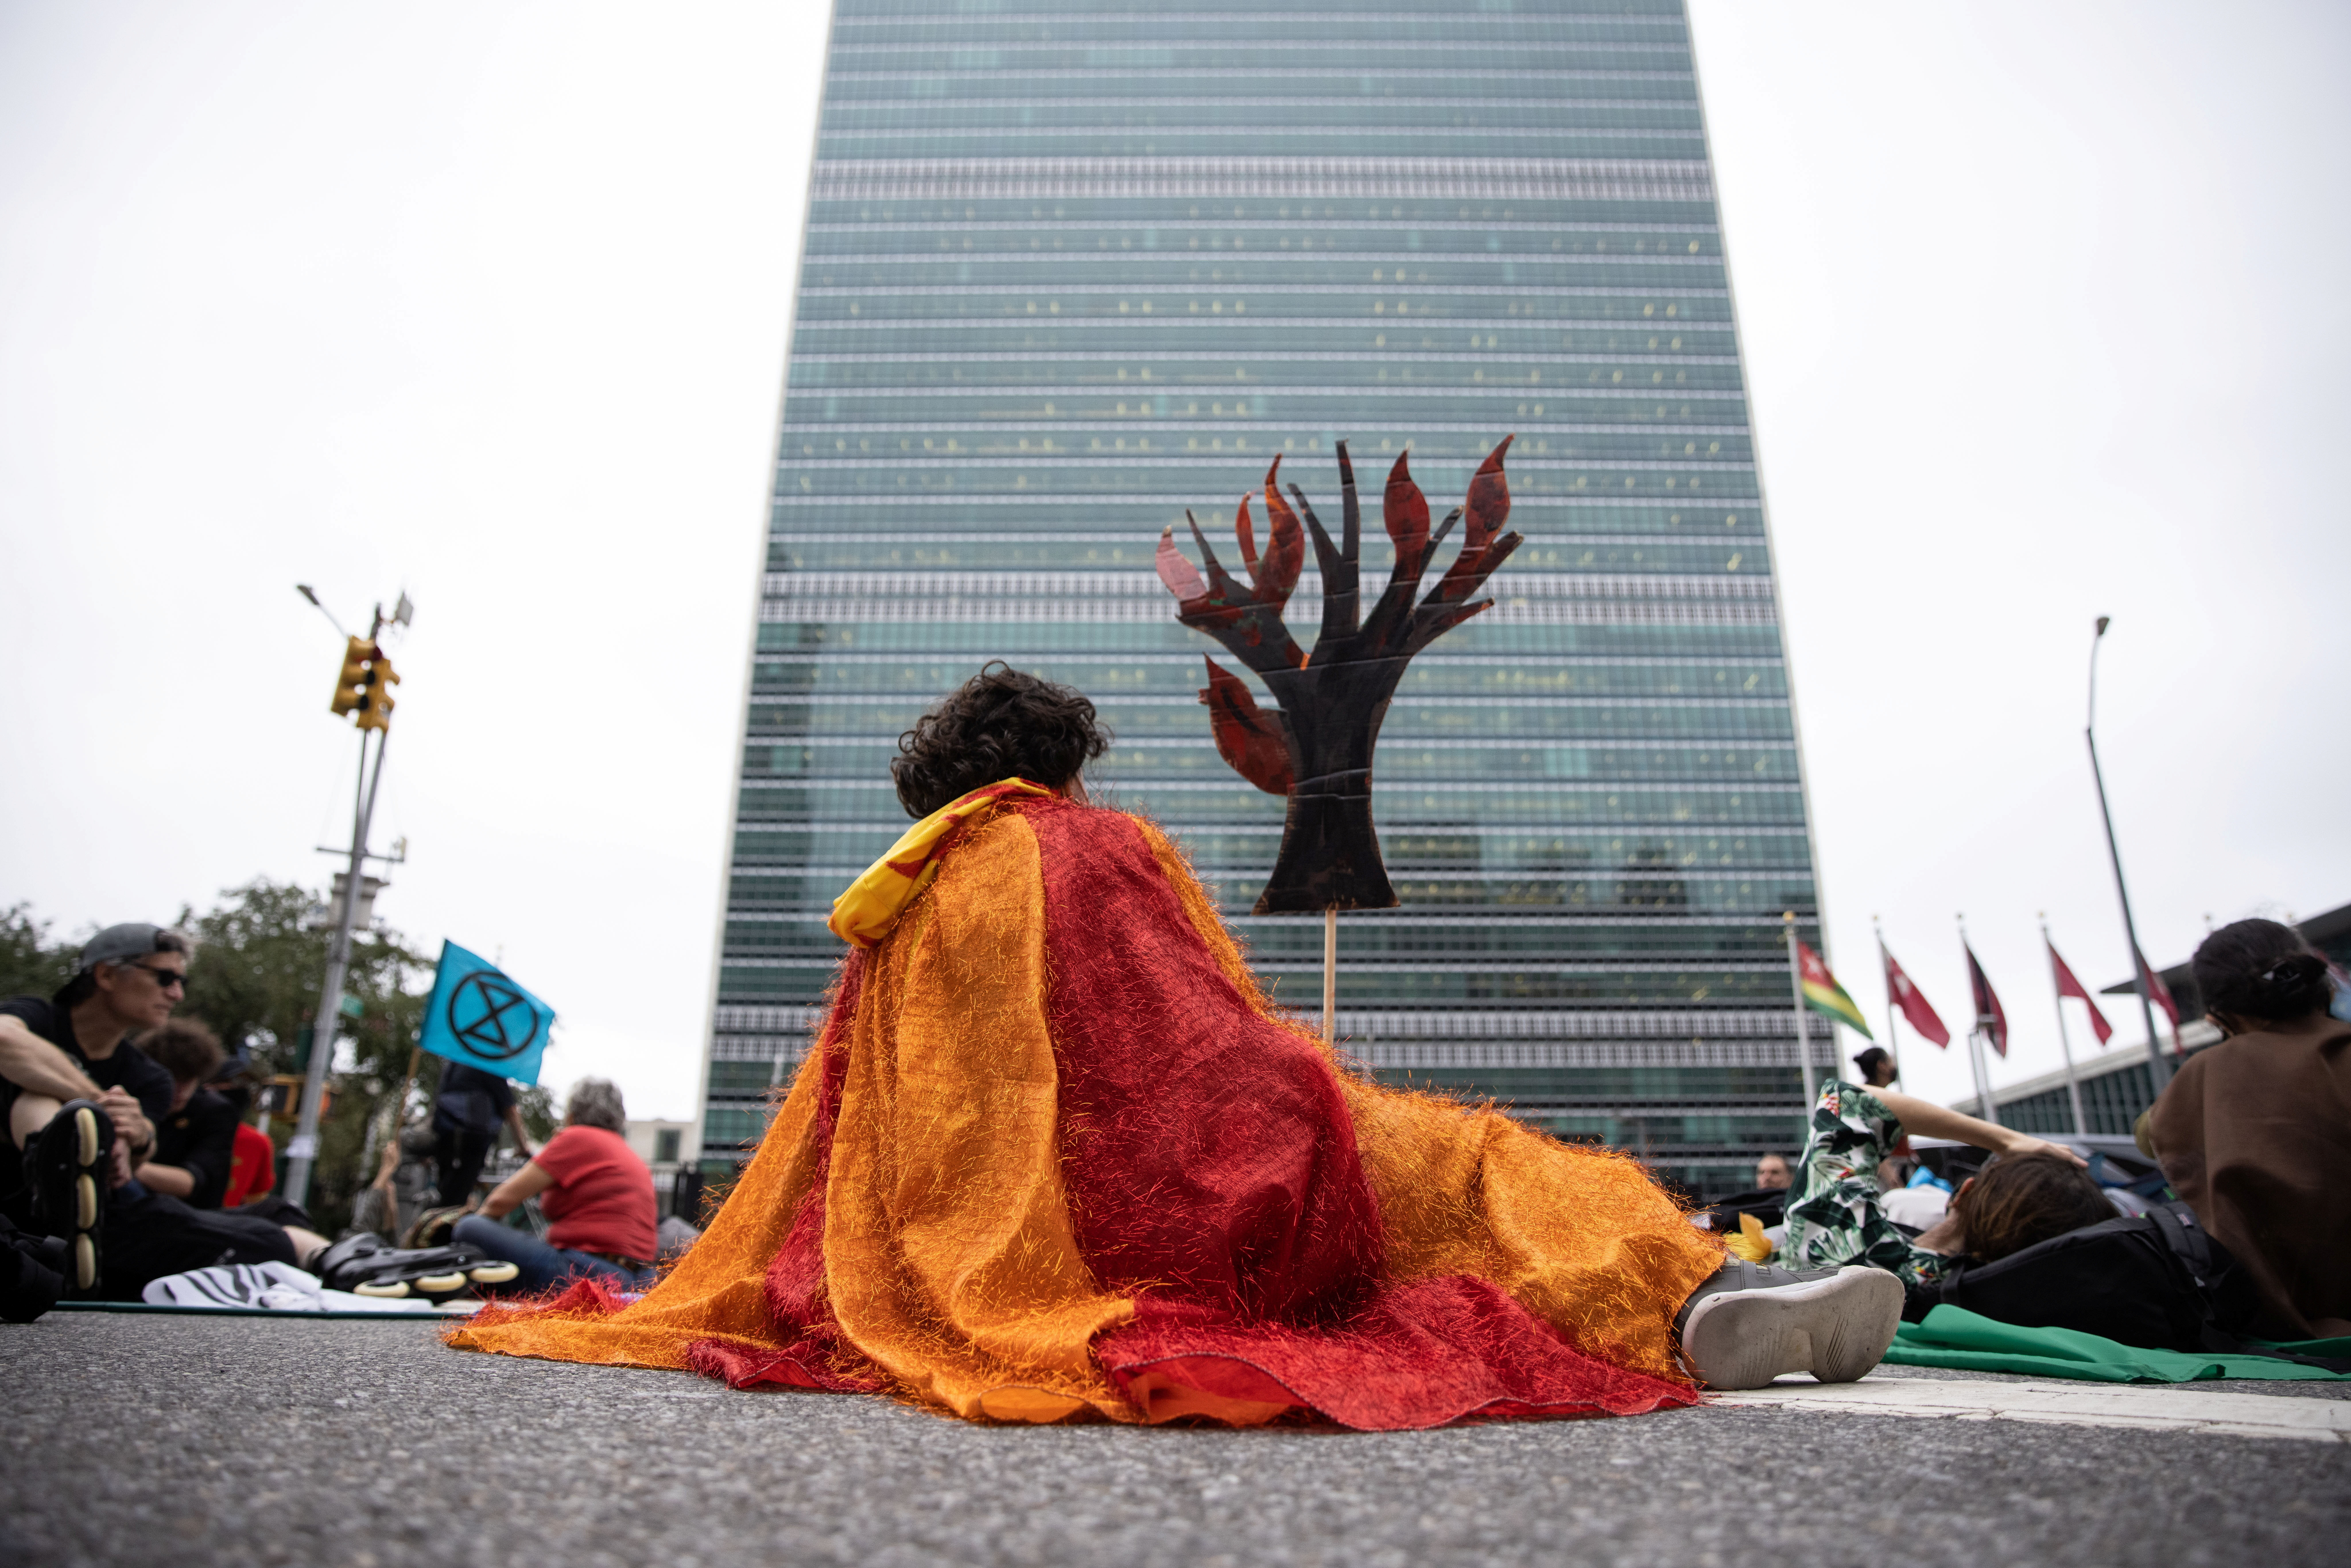 A protester holding a cardboard cut out of a tree on fire sits blocking the street in front of the United Nations during a 'non-violent resistance' climate change protest organized by Extinction Rebellion, where speakers demanded global leaders take more action before COP 26, in the Manhattan borough of New York City, U.S., September 17, 2021.